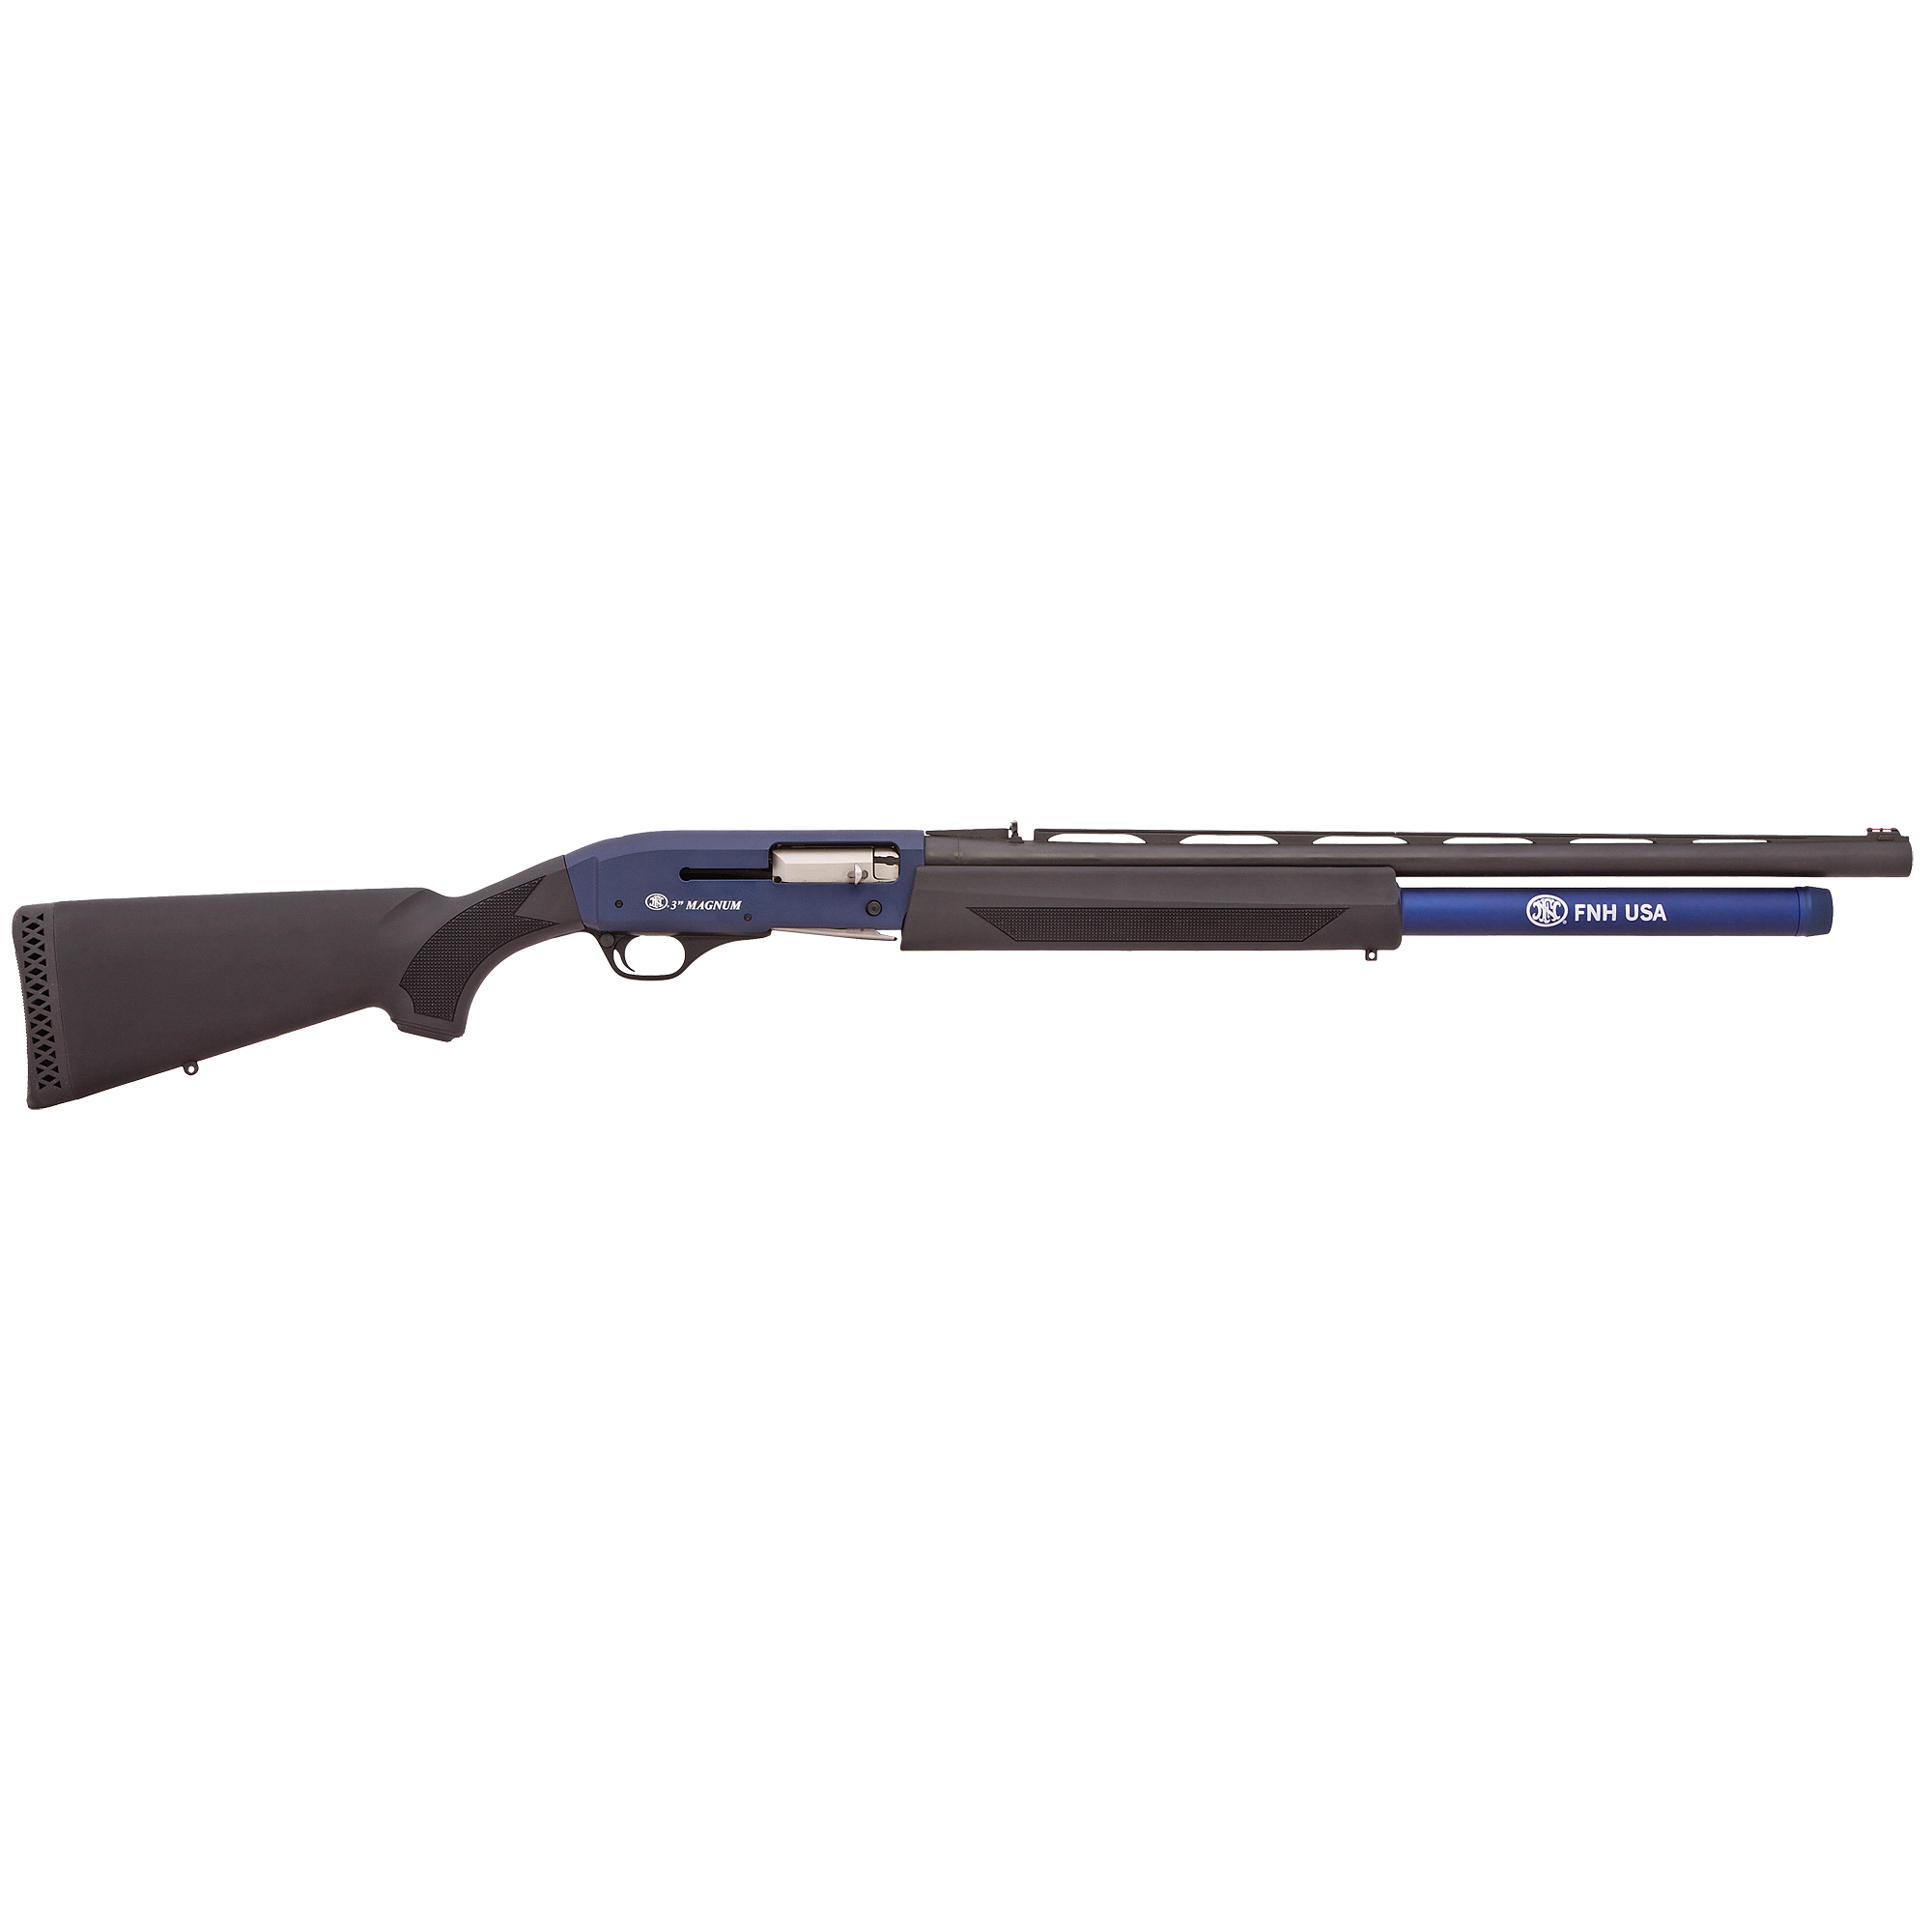 """Leveraging more than 100 years of auto loading shotgun engineering"""" the FN SLP(TM) was introduced in 2008 and was instantly recognized for performance and ingenuity as the 2009 Shotgun of the Year by The American Rifleman magazine."""